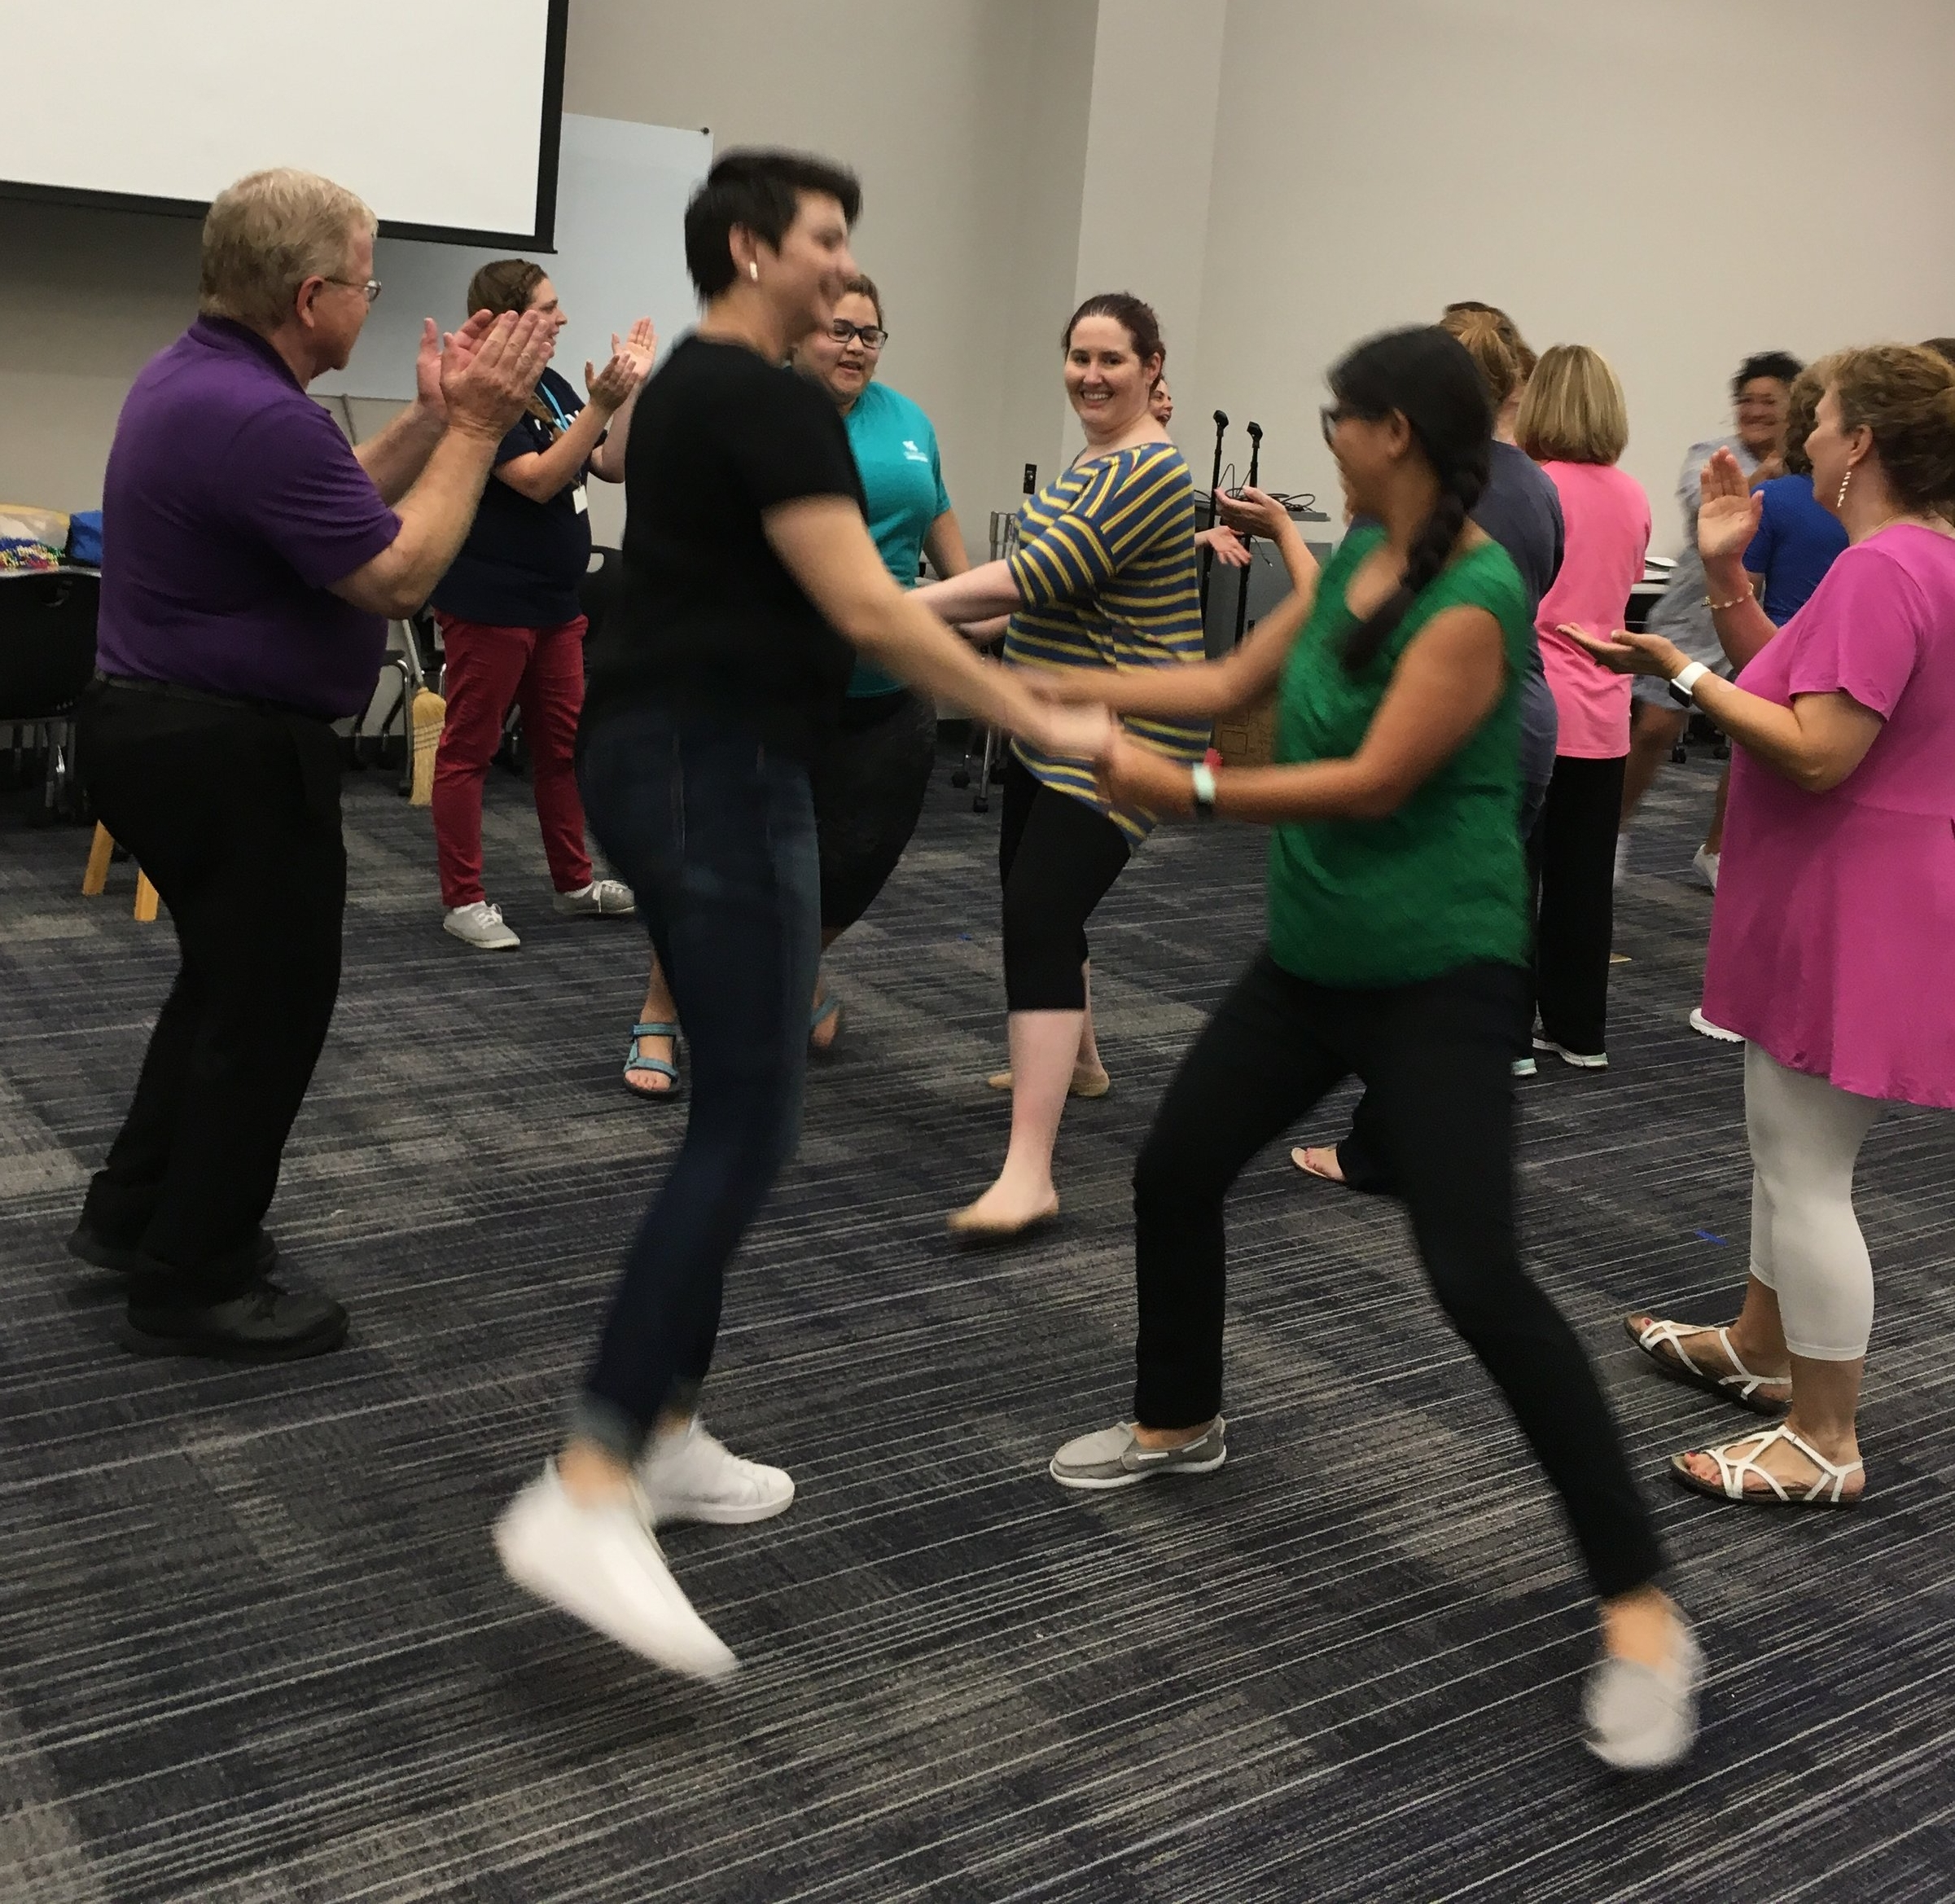 Folk dancing with Klein ISD elementary music teachers at an in-service event, 2018.